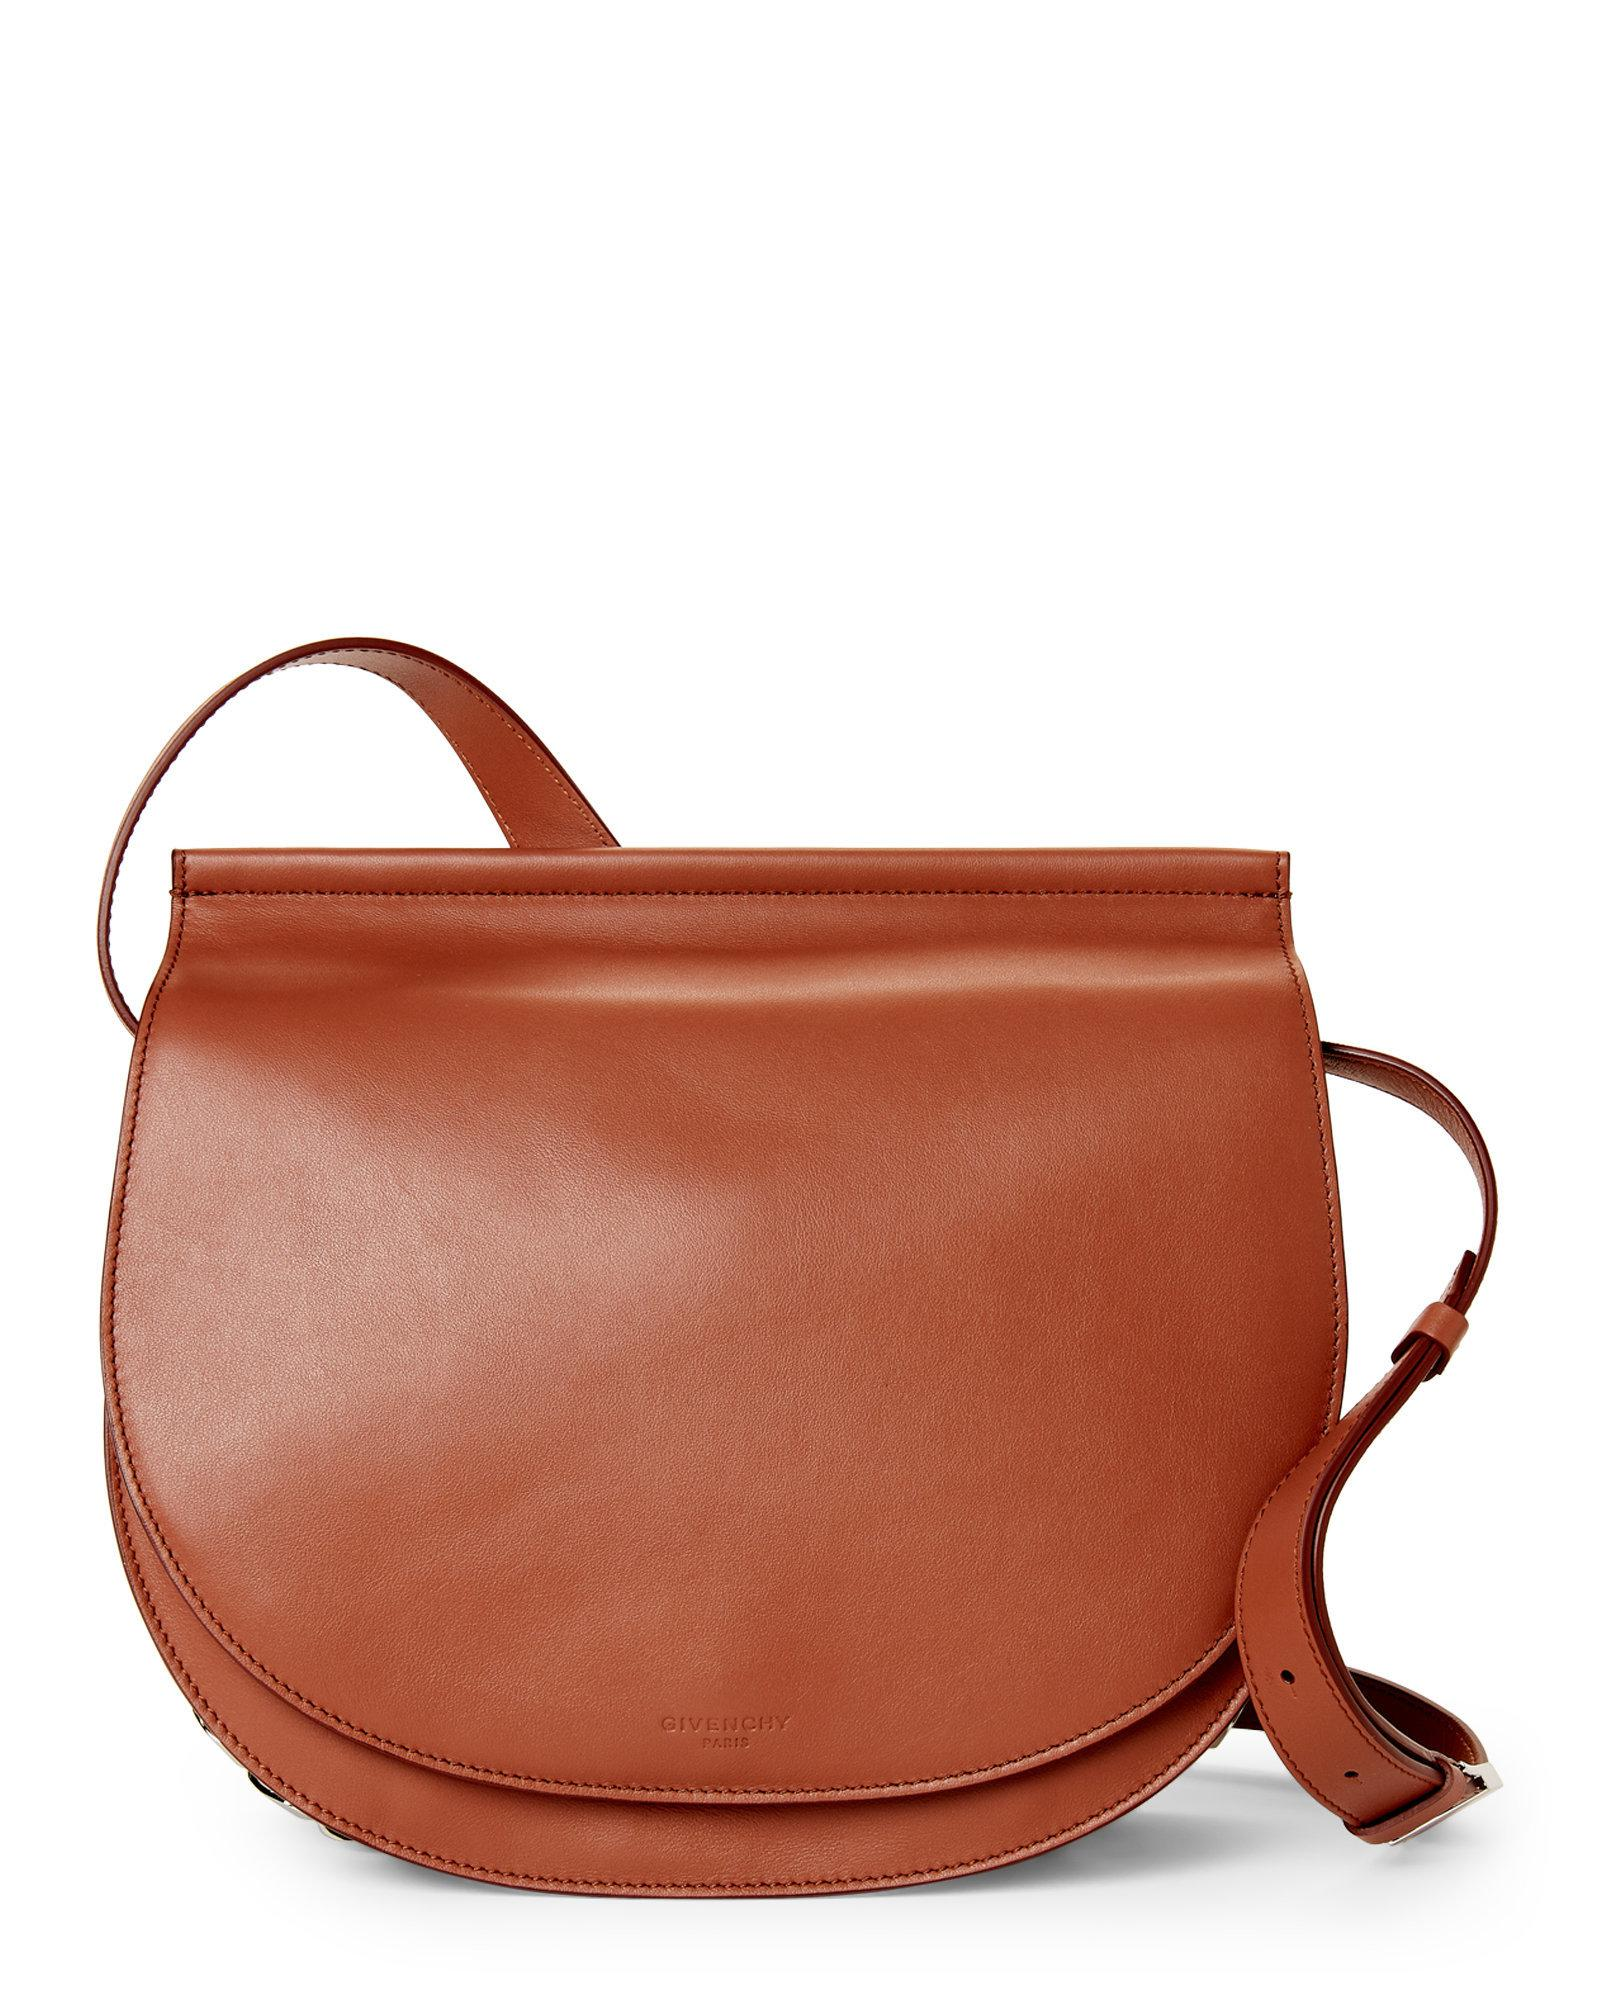 Infinity Saddle bag - Brown Givenchy lkwDErF